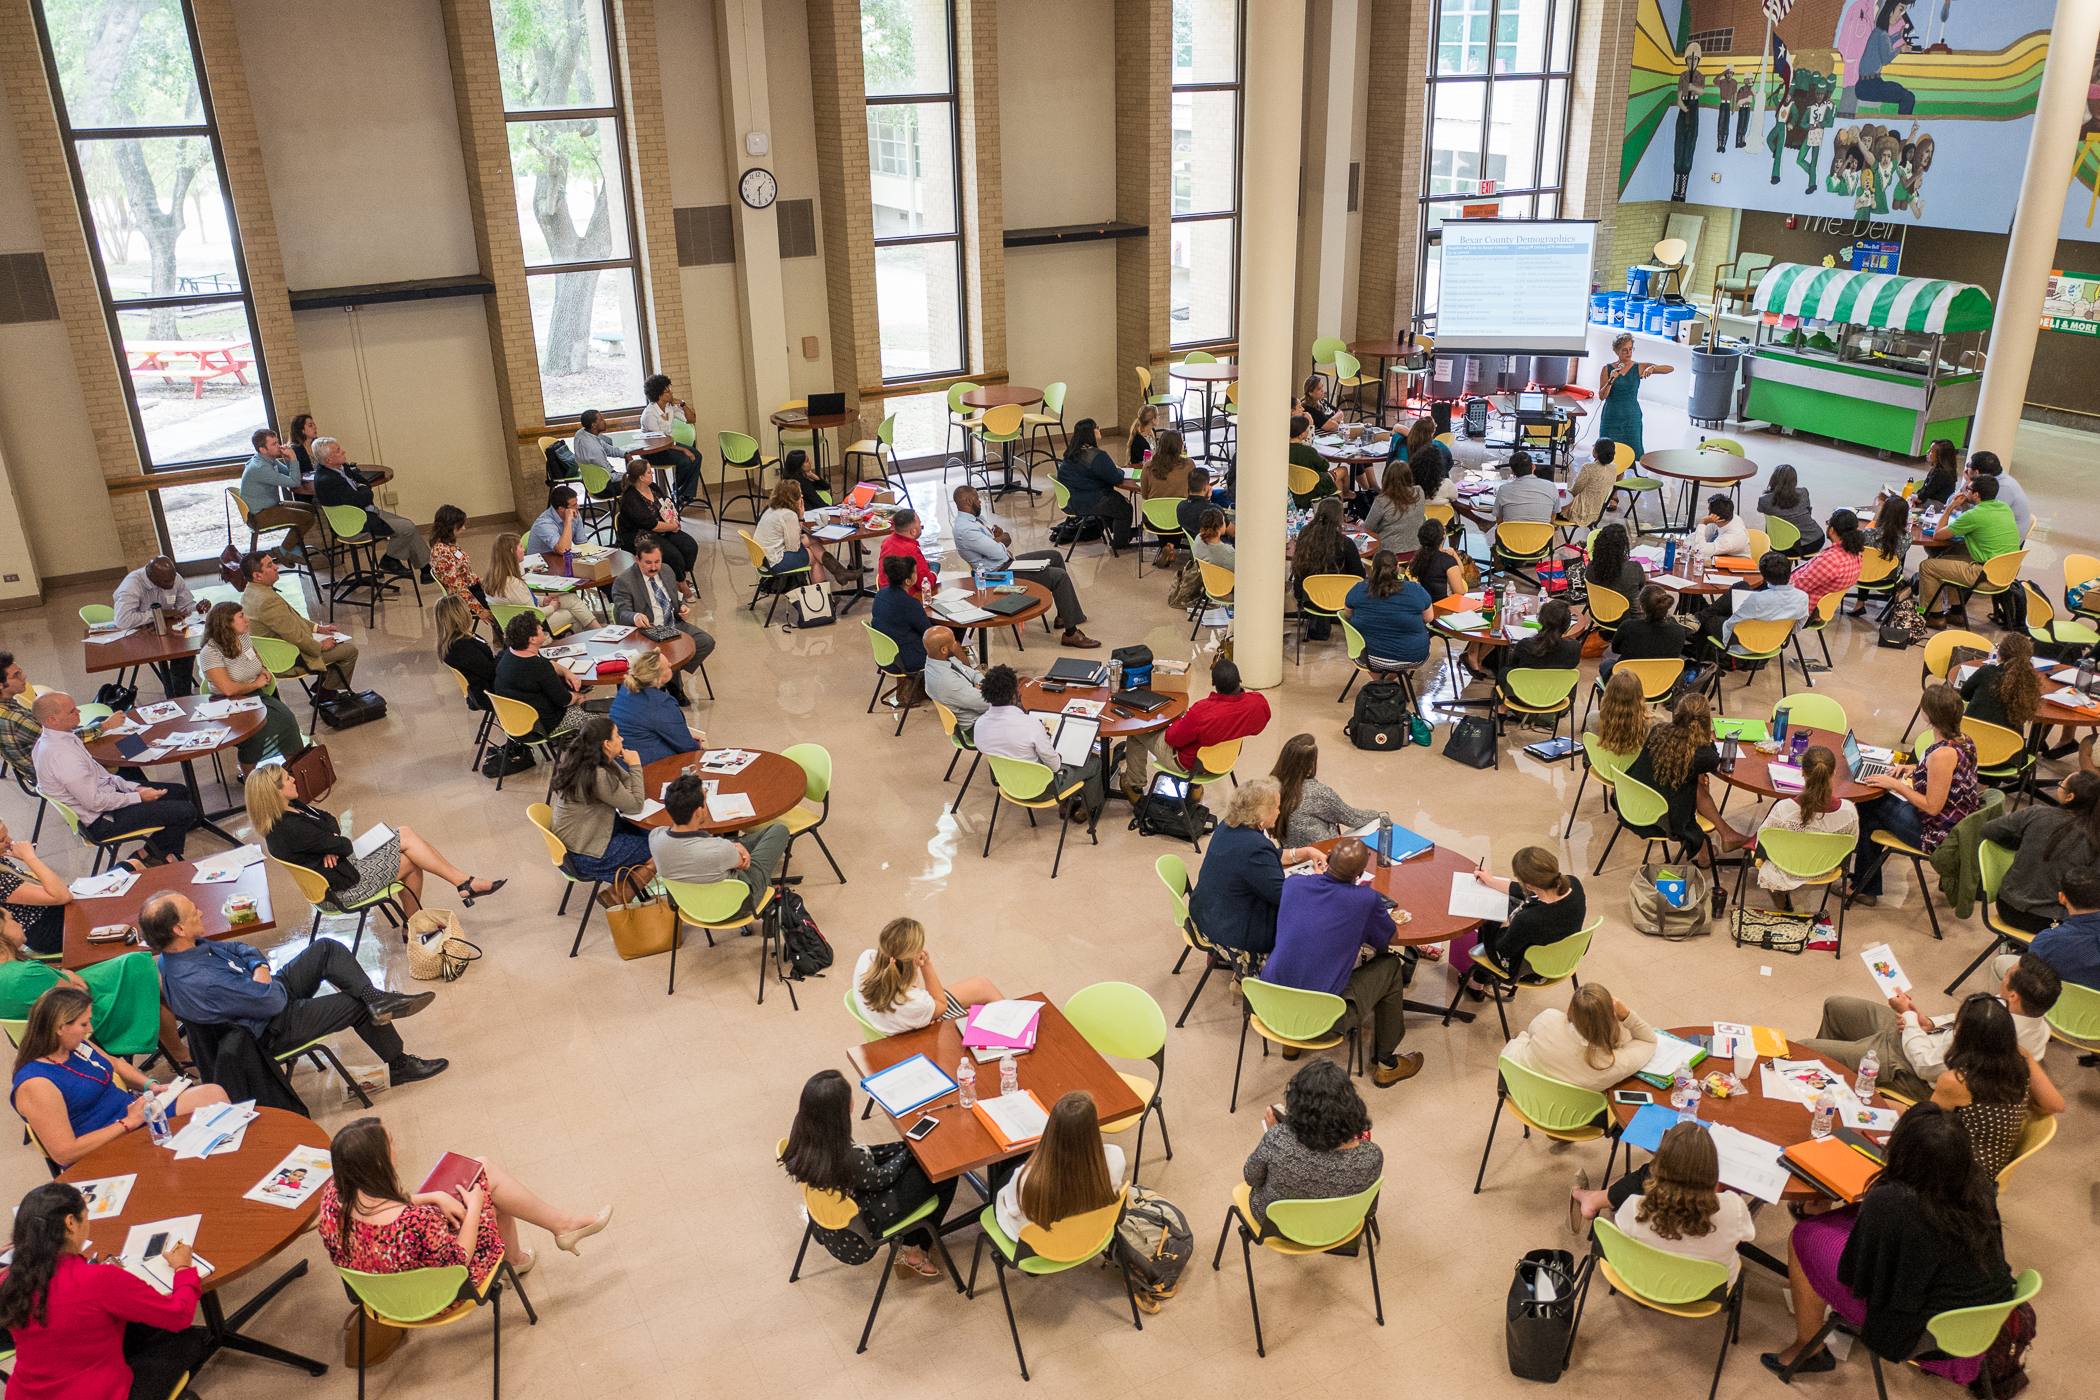 The cafeteria at Sam Houston High School is filled with educators during A History of Public Education in San Antonio hosted by San Antonio Teach for America. Photo by Scott Ball.